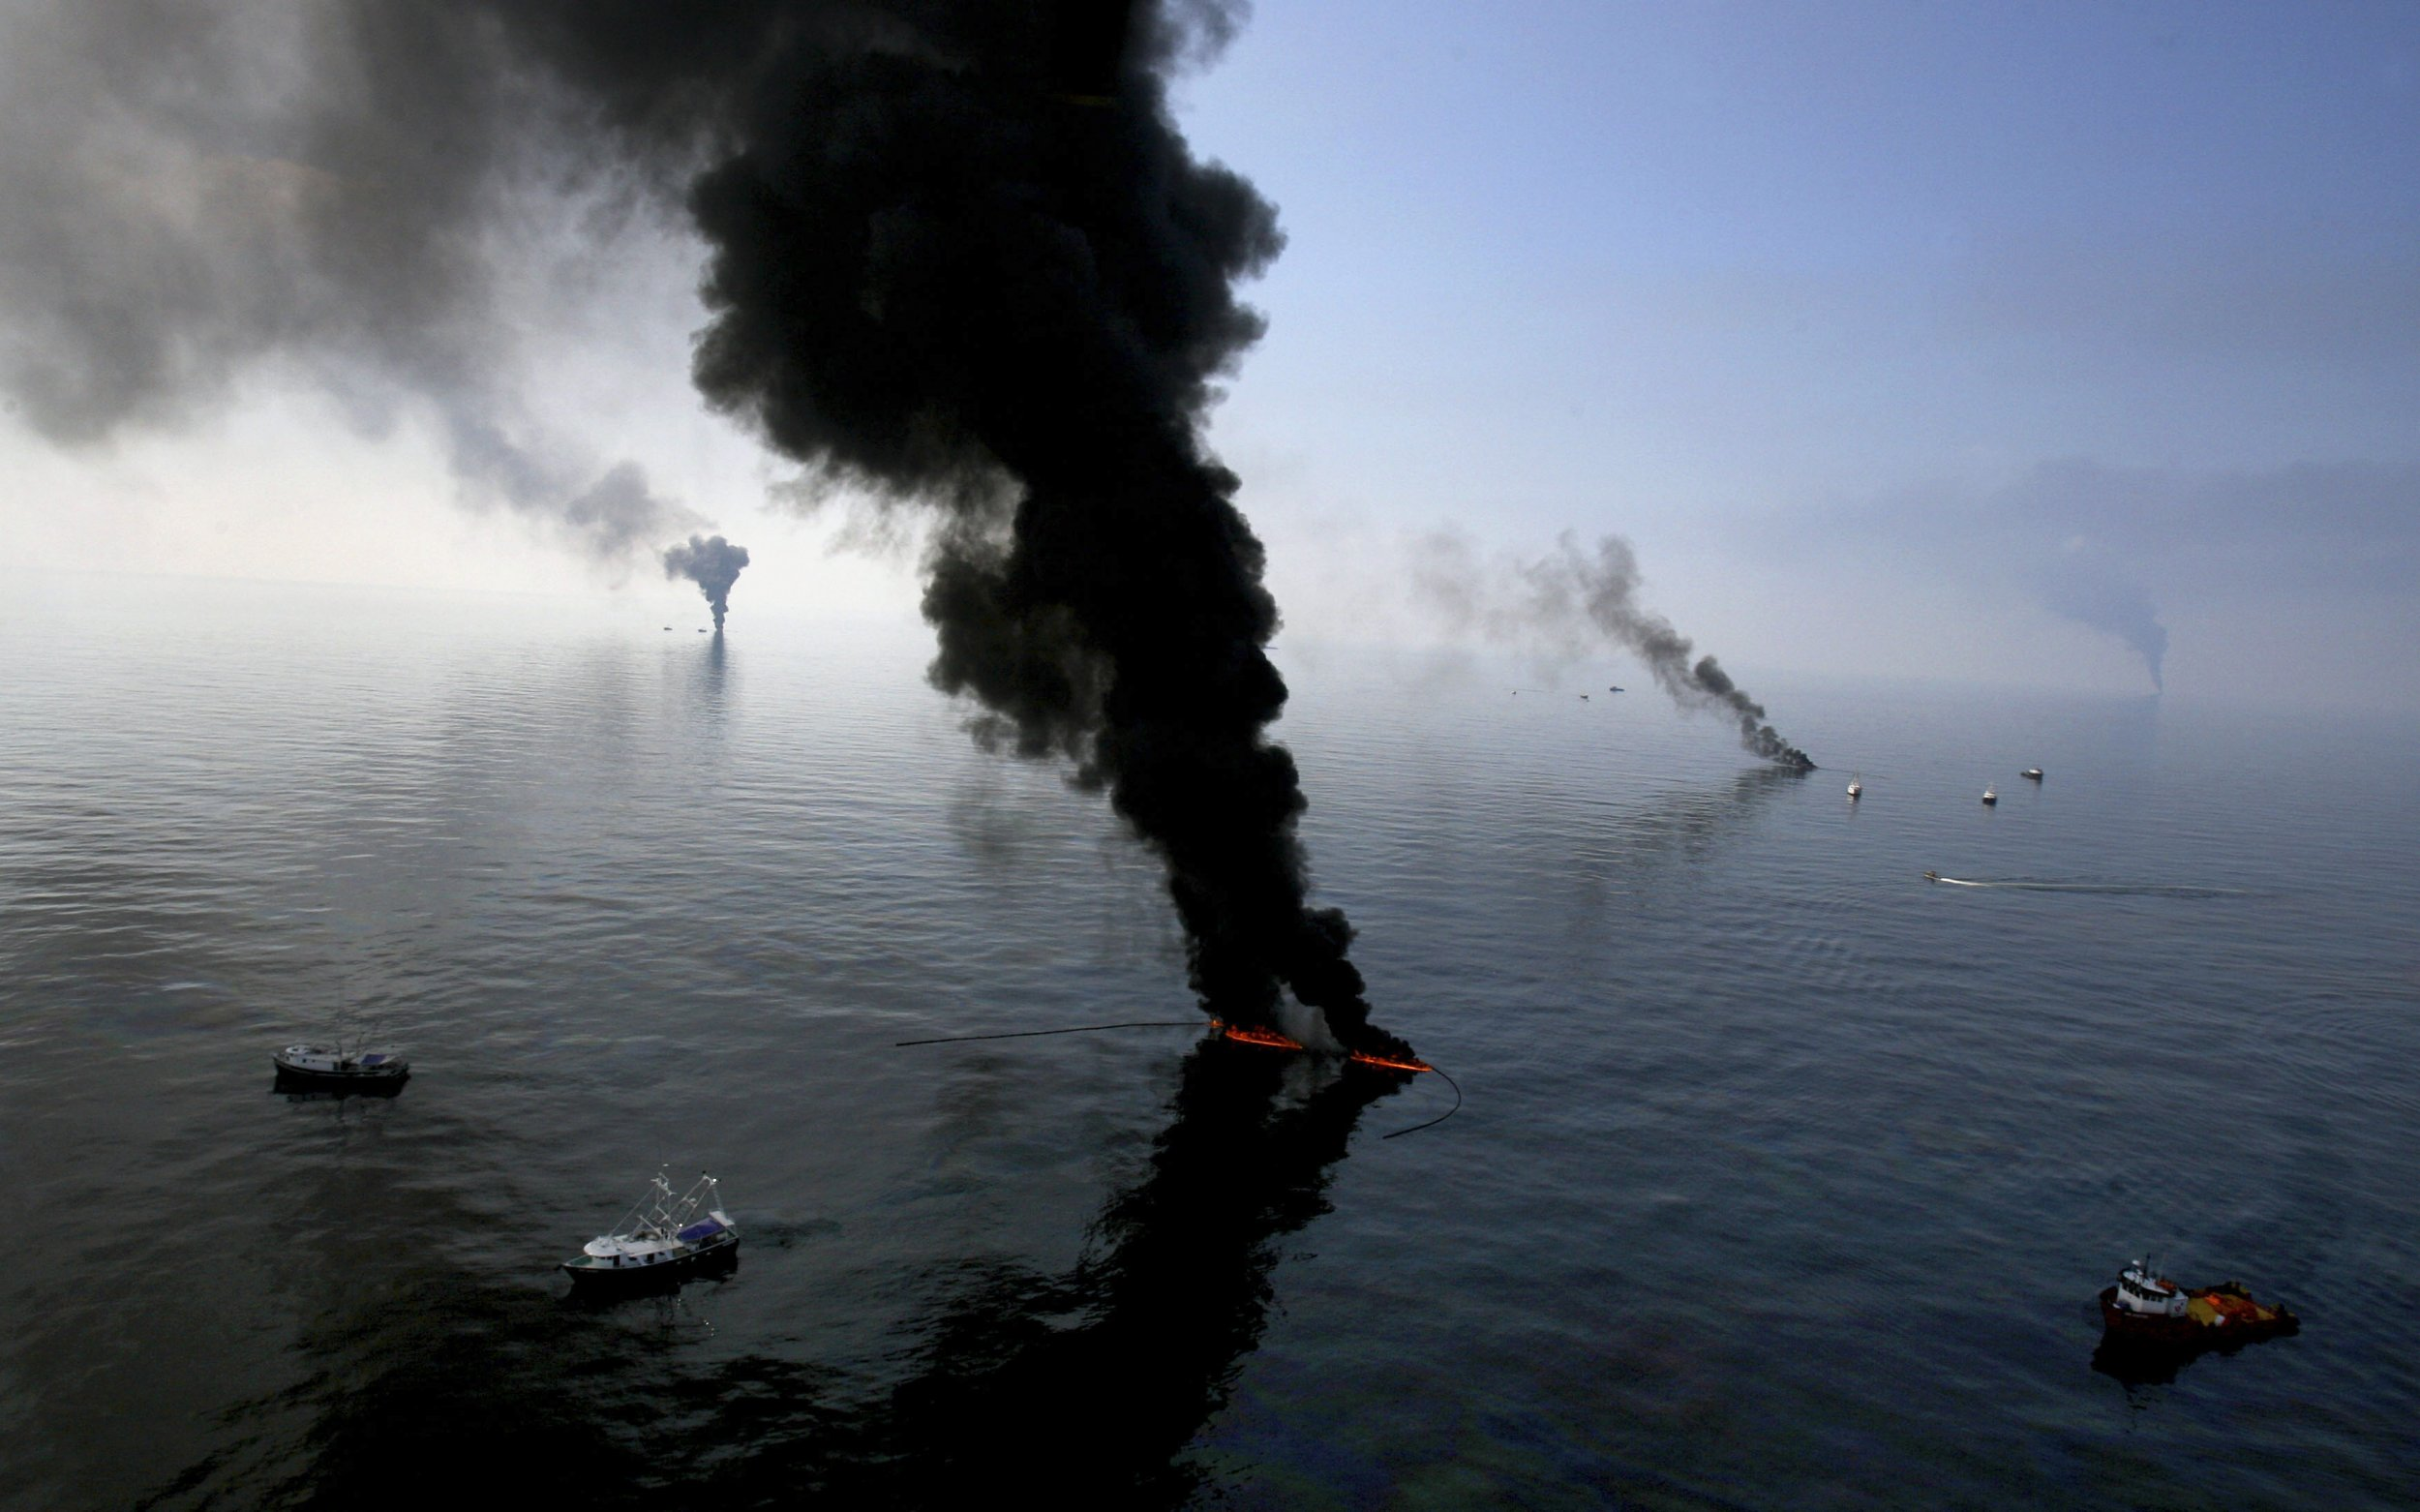 deep water horizon oil spill The deepwater horizon spill was front-page news, but some parts of the story were overlooked or underreported here are 10 things you may have missed.